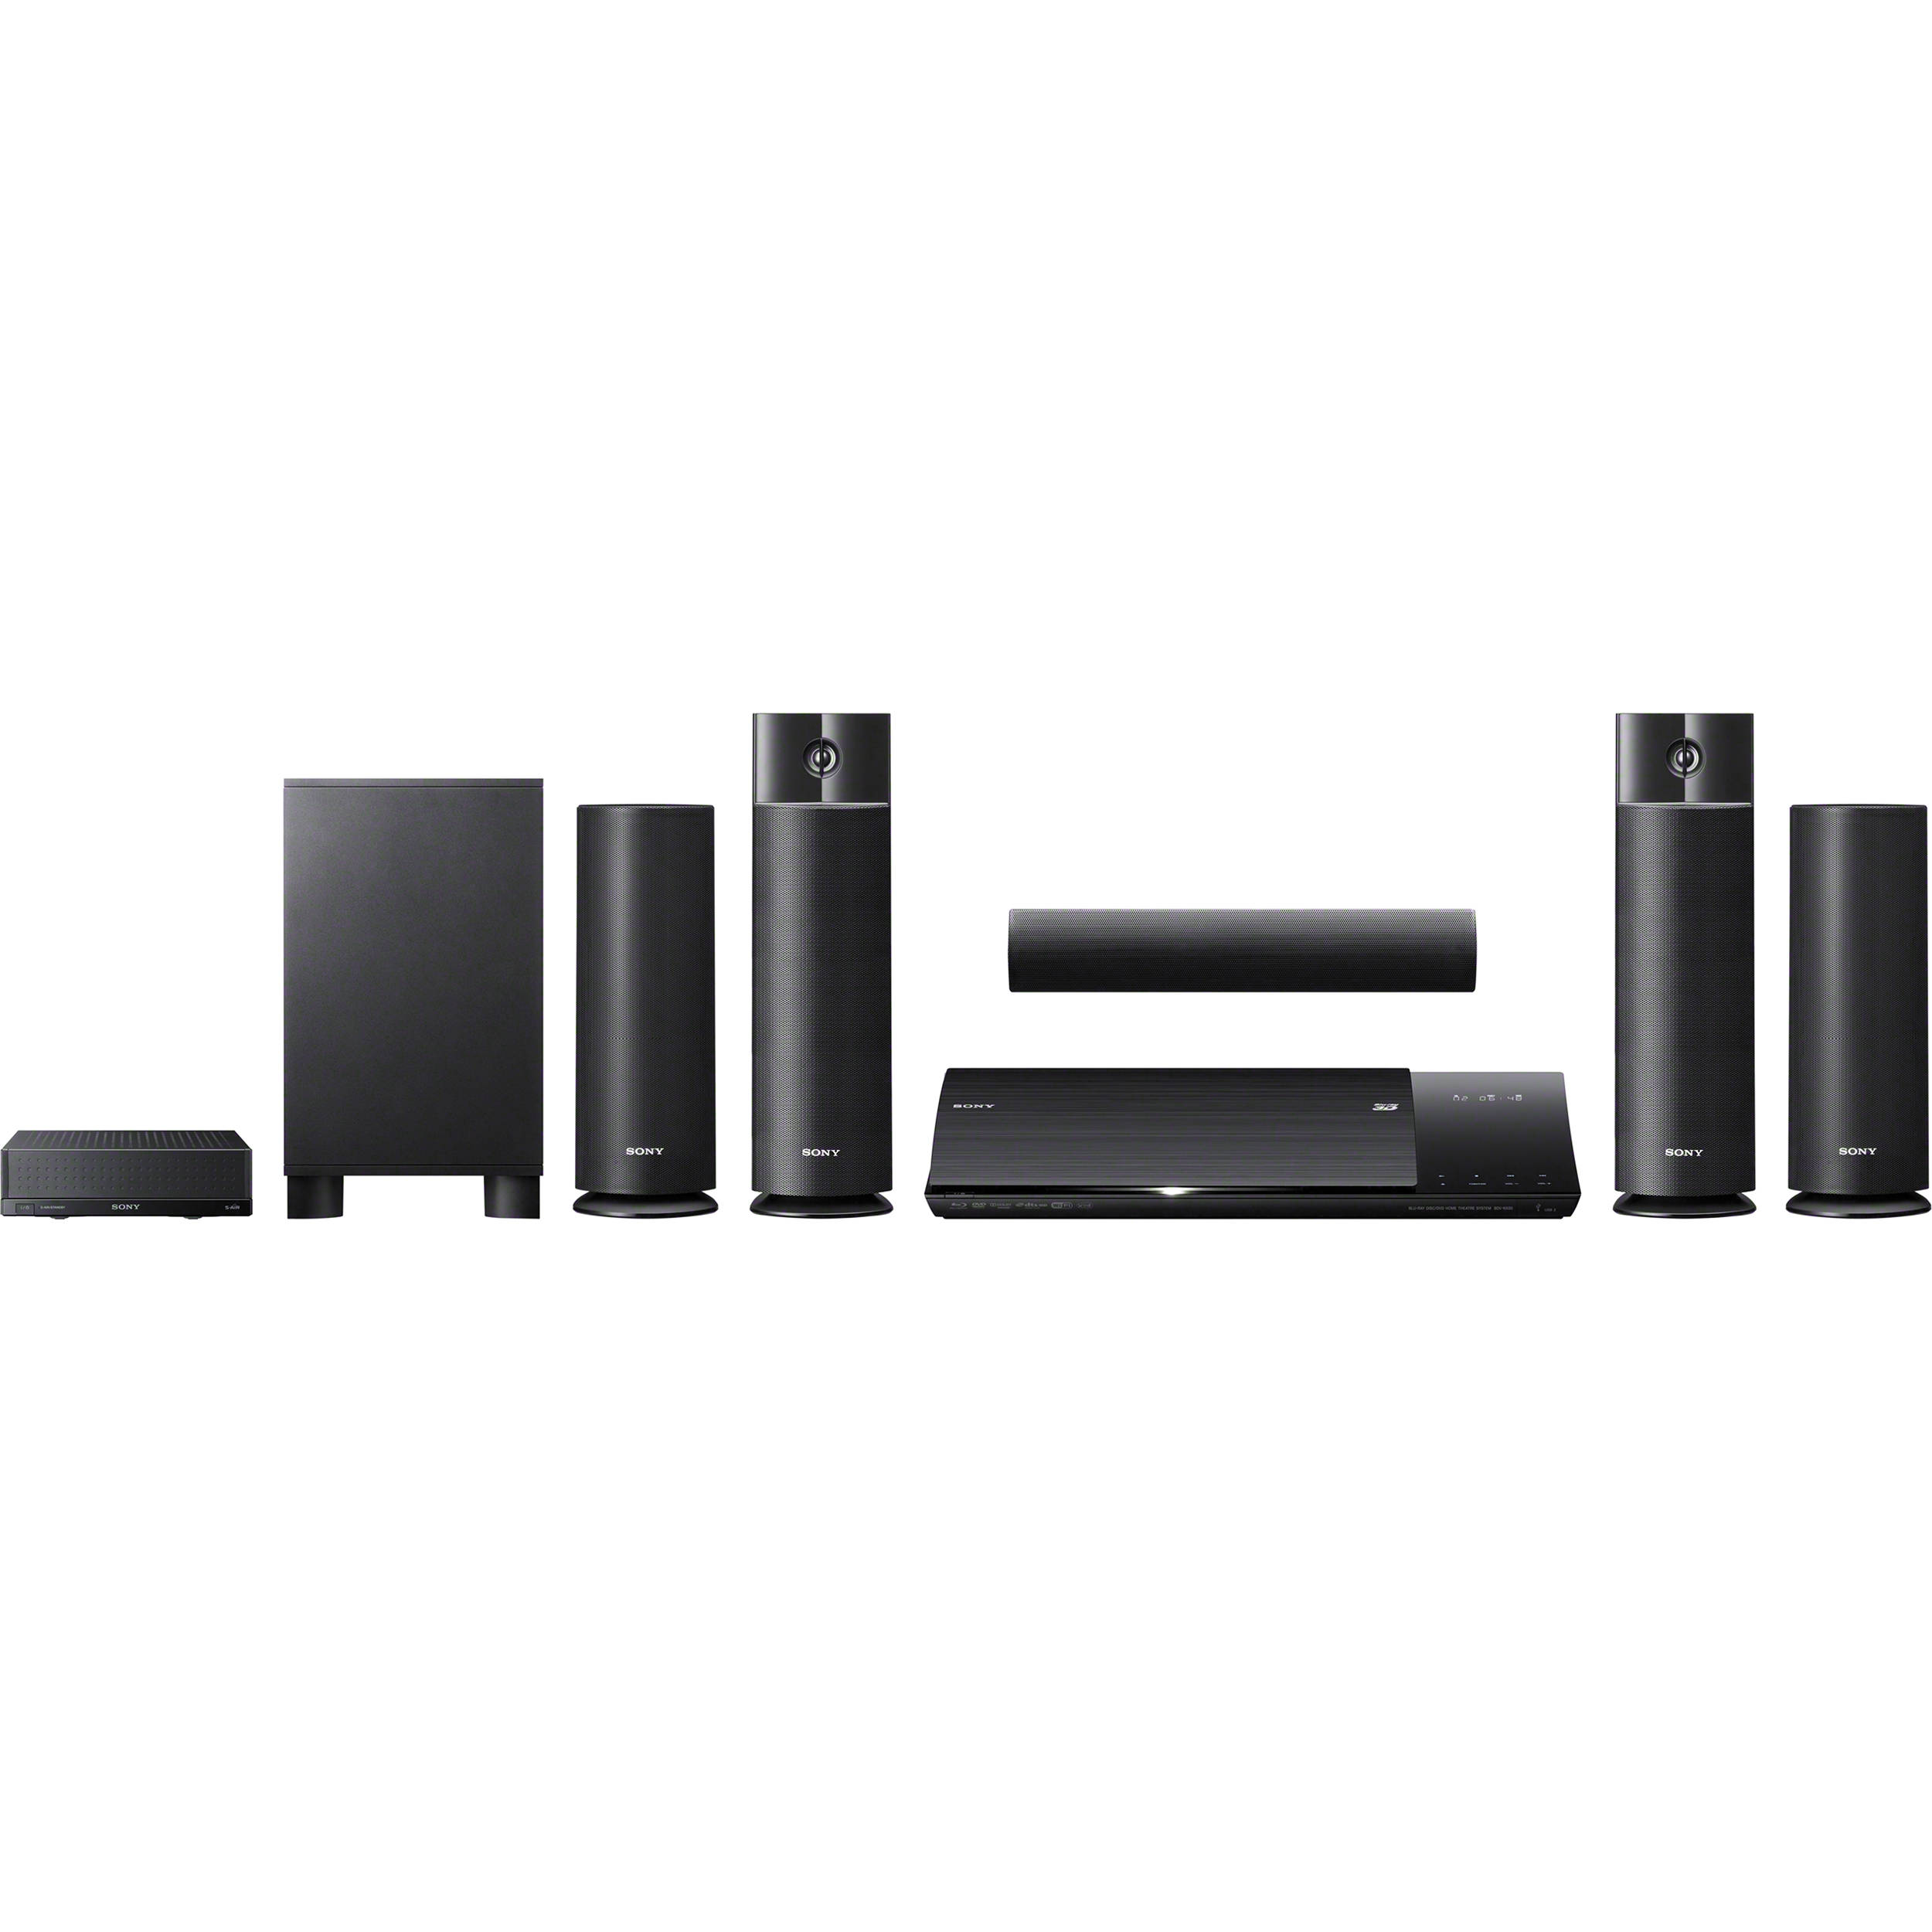 Sony Bdvn790w 3d Blu Ray Home Theater System